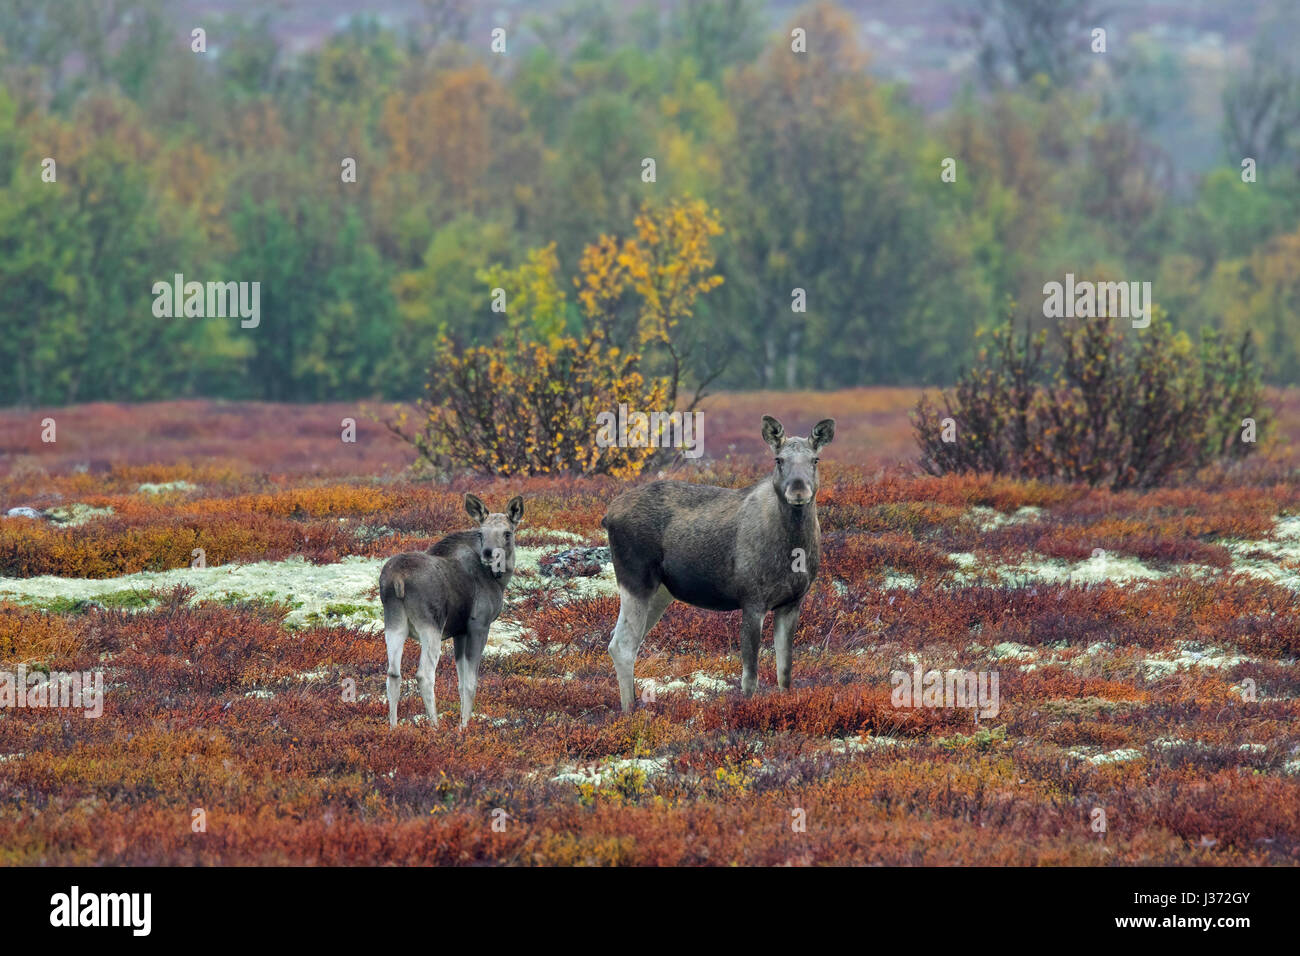 Moose (Alces alces) cow with calf foraging in moorland in autumn, Scandinavia - Stock Image